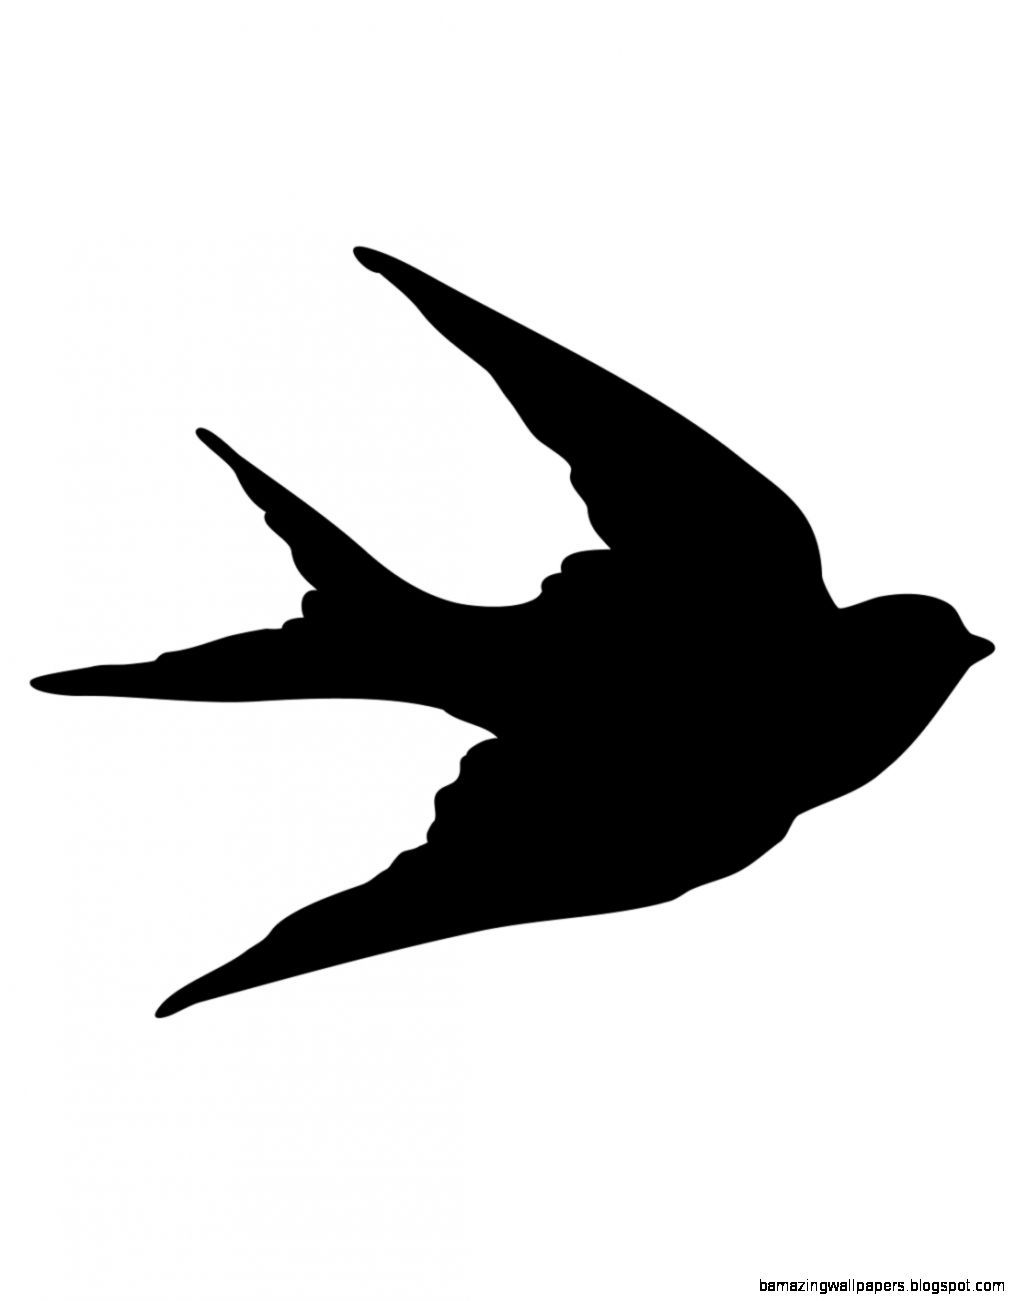 Swallow Silhouette Tattoo Designs Google Search Bird Silhouette Bird Drawings Silhouette Clip Art